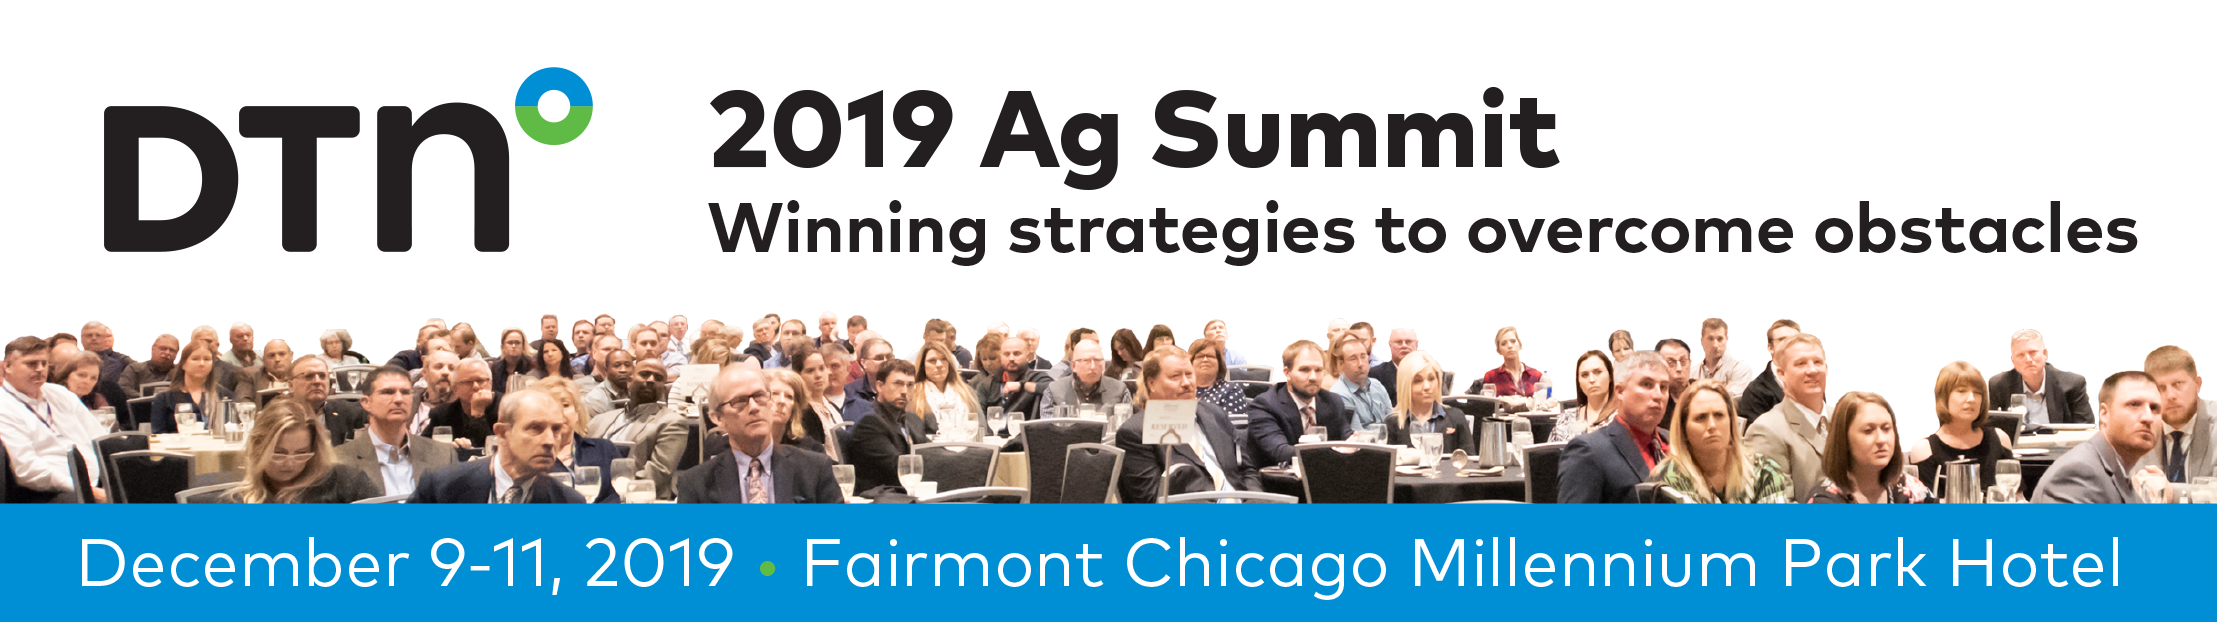 DTN 2019 Ag Summit